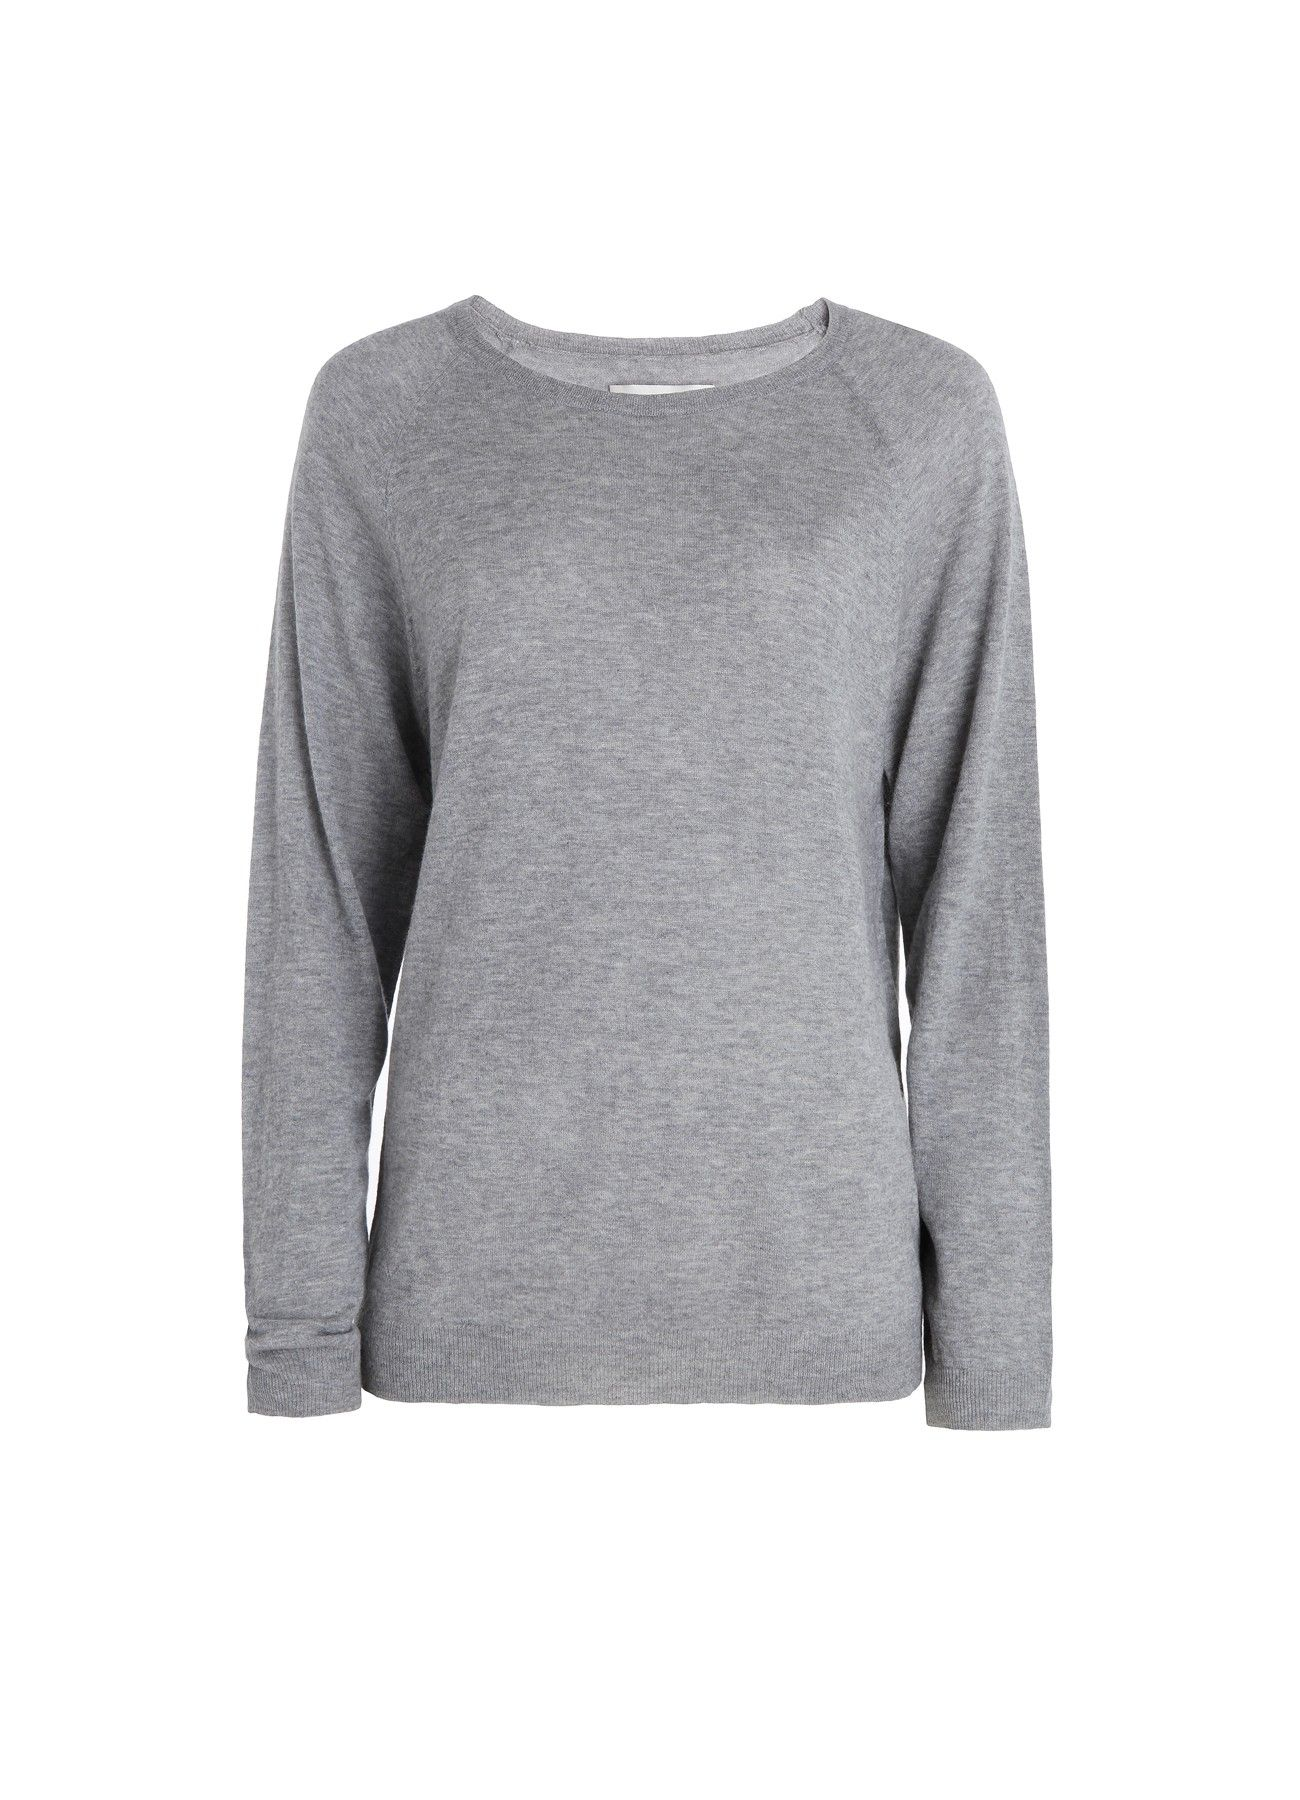 93ca067d Grey cashmere | cozy CASHMERE - SHIRTS FOR HIM | Pinterest ...